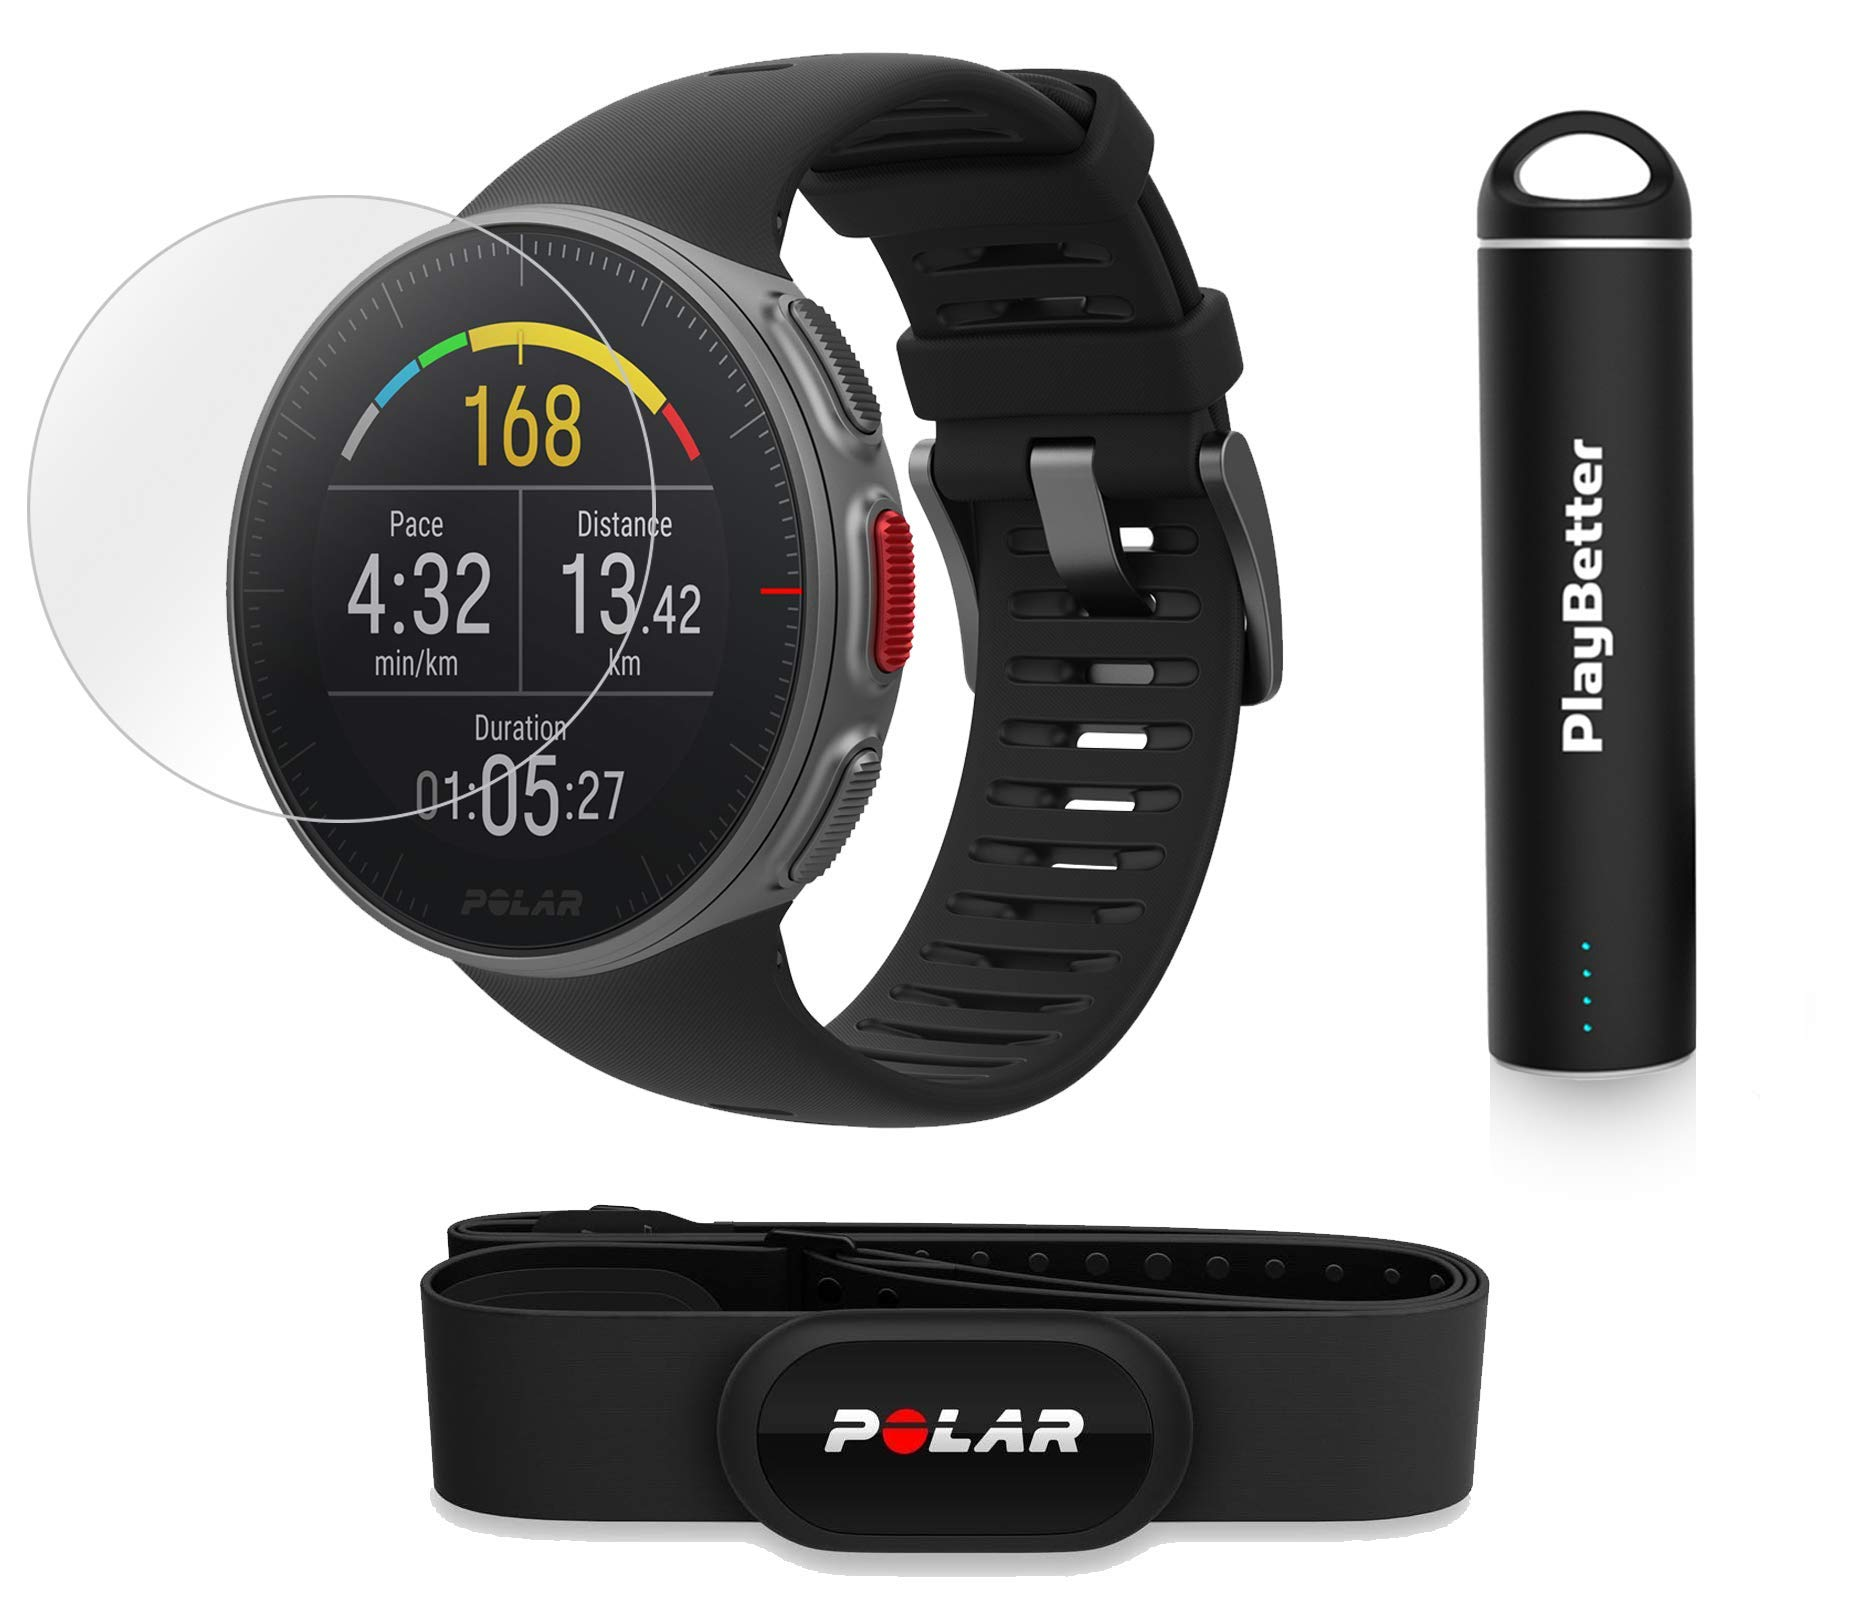 PlayBetter Polar Vantage V Pro (Black with H10 Heart Rate Sensor) Power Bundle Portable Charger & Screen Protectors | Multisport Watch | GPS & Barometer by PlayBetter (Image #1)